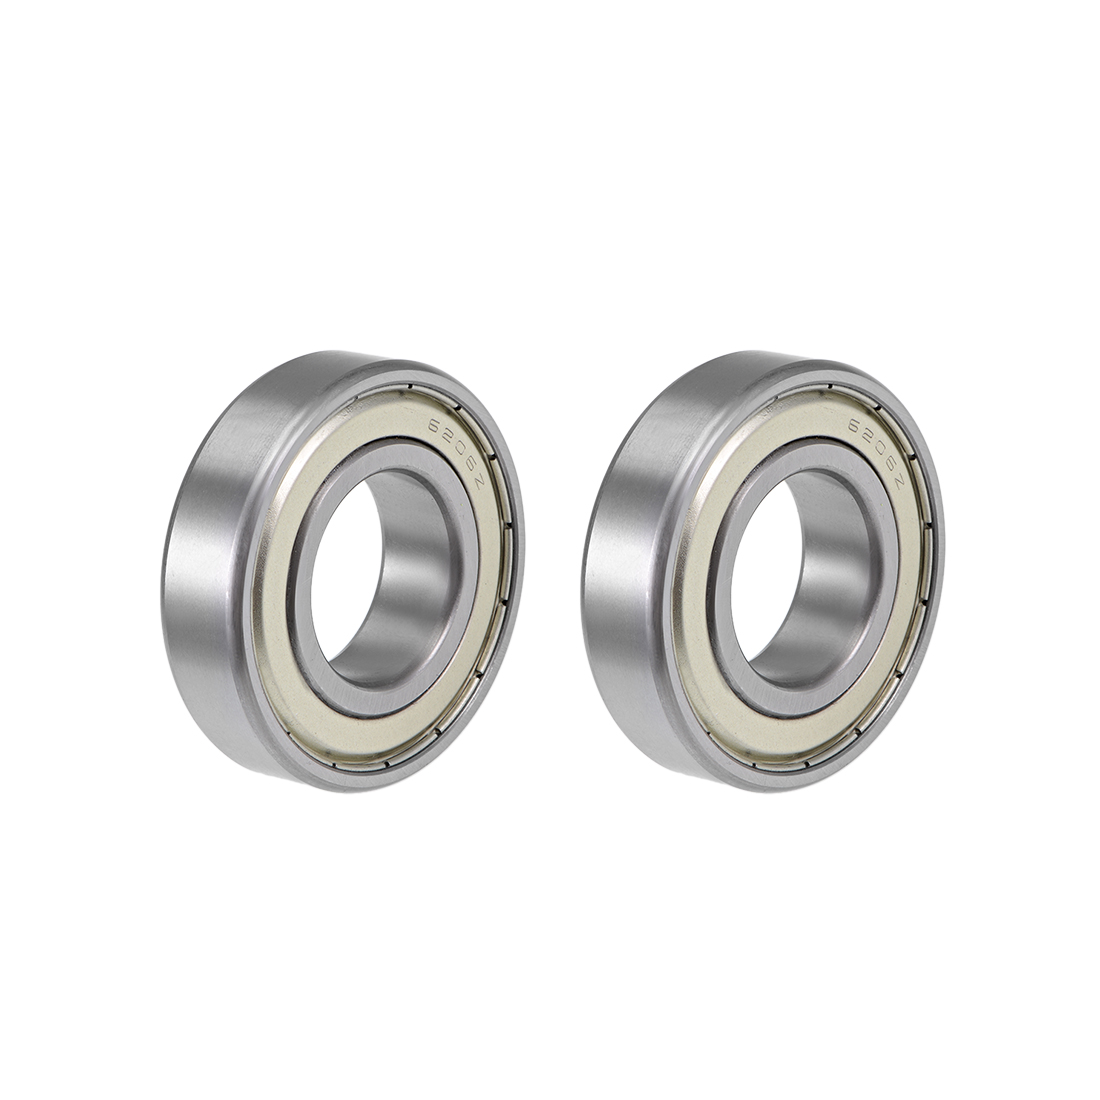 6206ZZ Ball Bearing 30x62x16mm Double Shielded ABEC-3 Bearings 2pcs